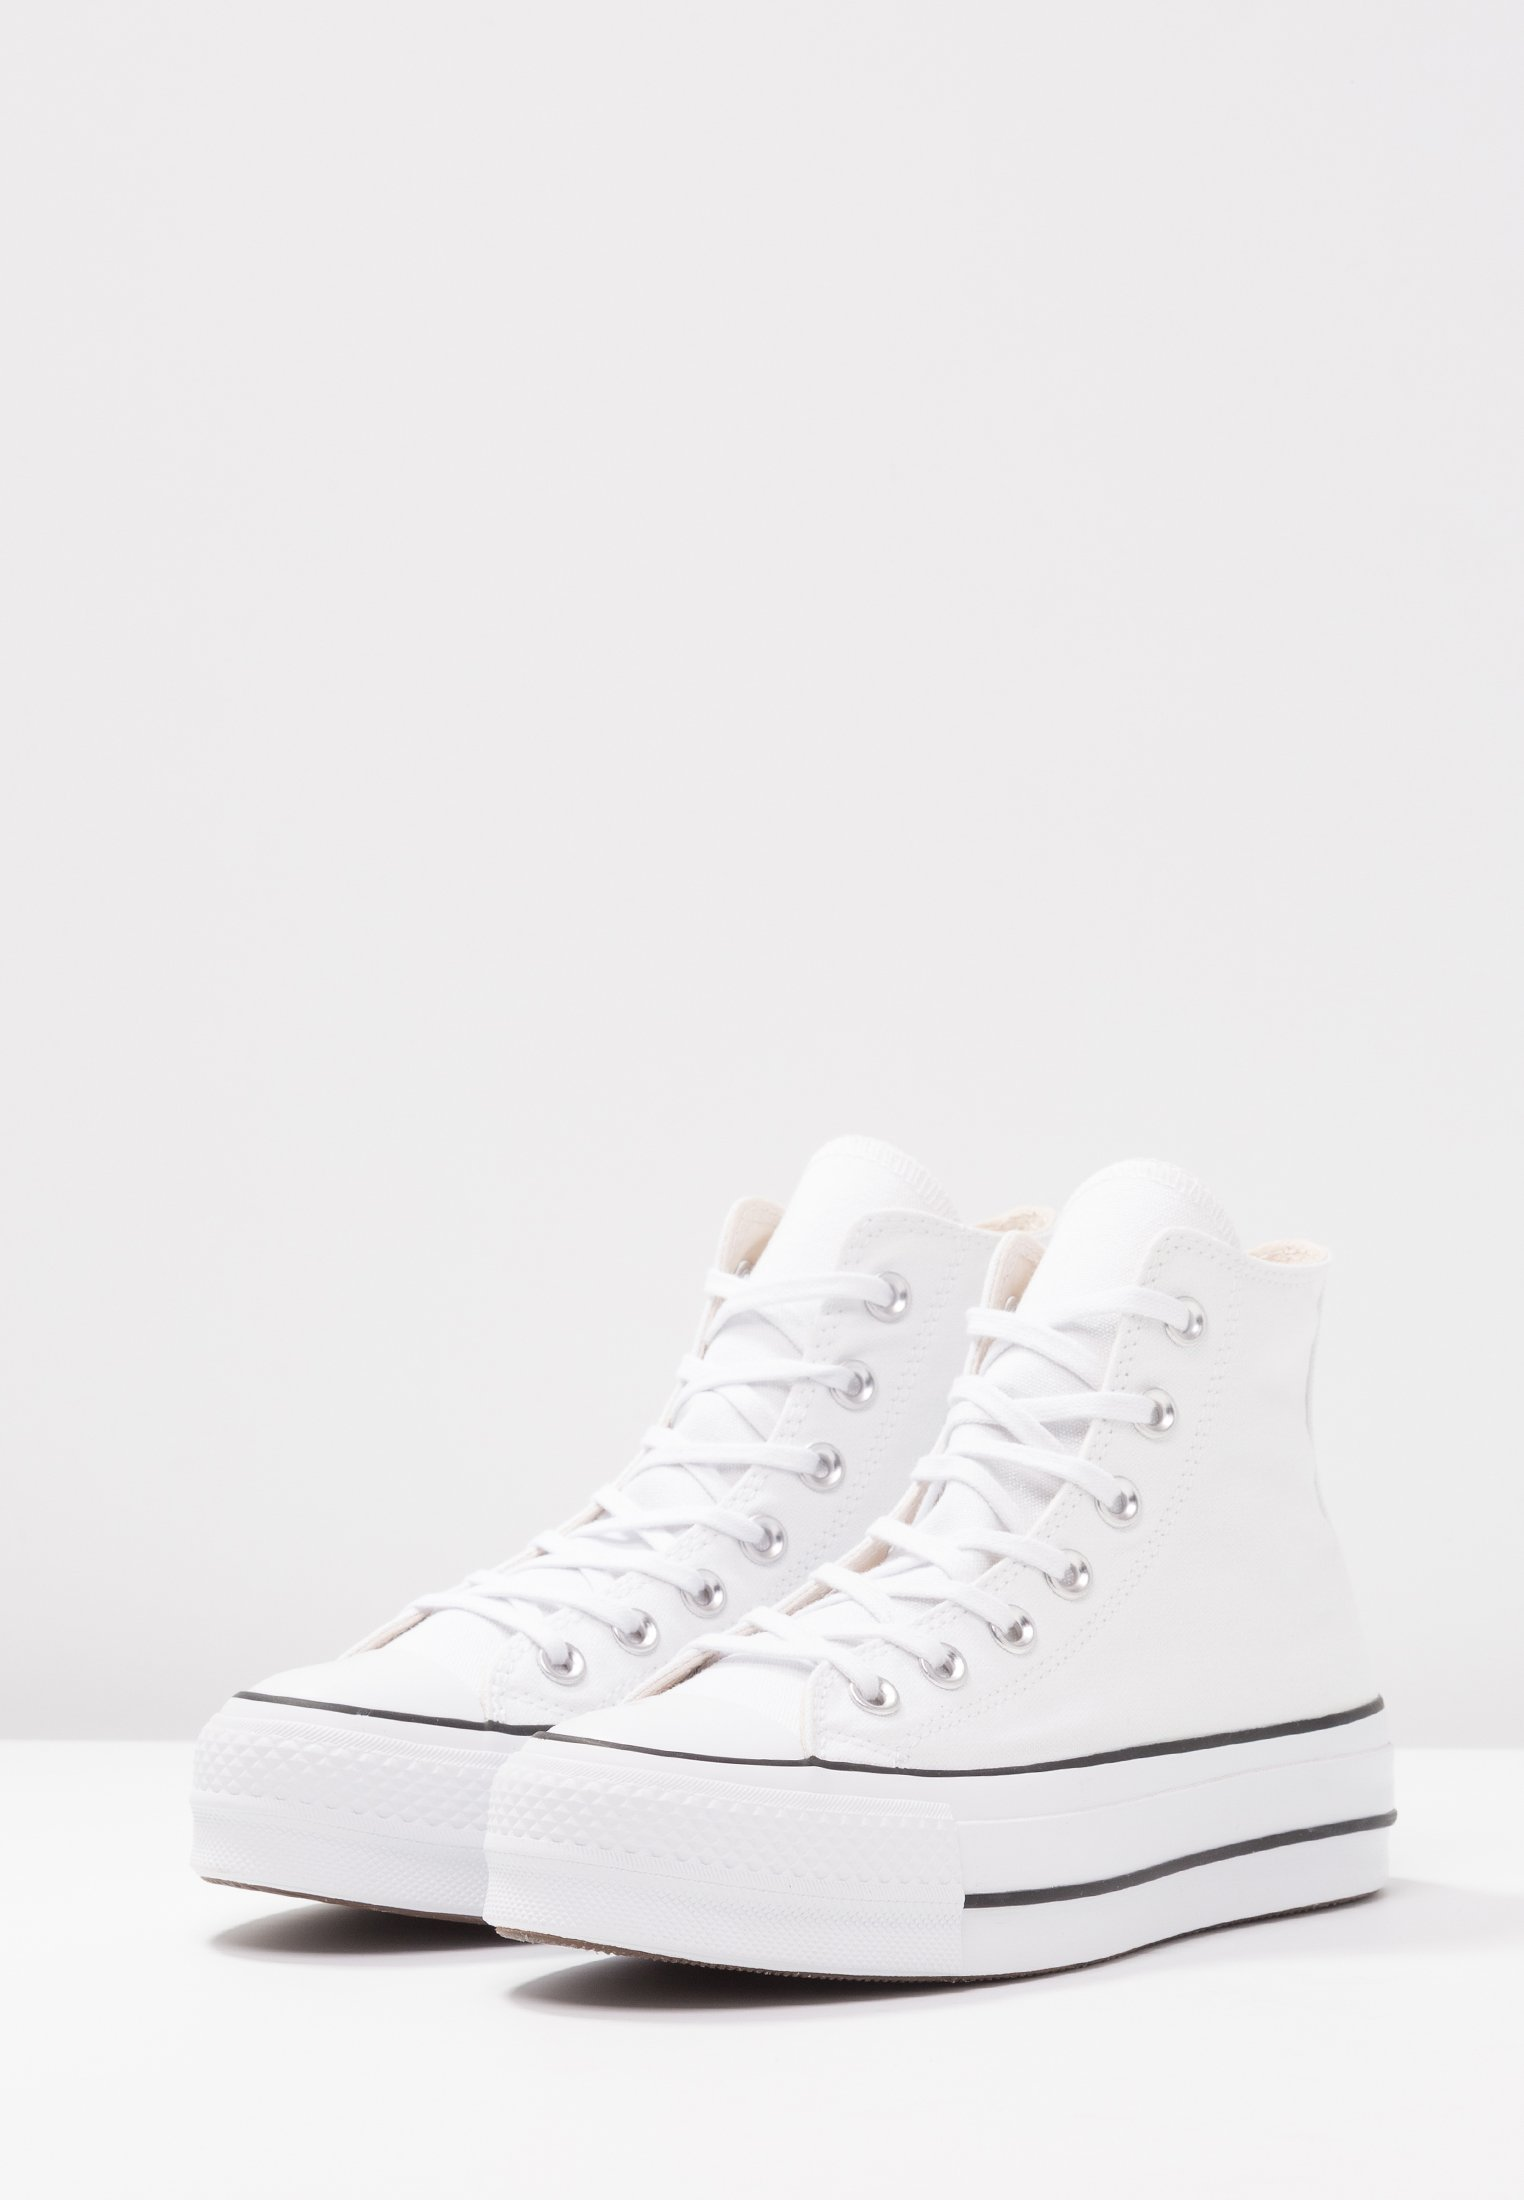 New Release Latest Discount Women's Shoes Converse CHUCK TAYLOR ALL STAR LIFT High-top trainers white/black 6wVKRUcJo kJucNmxda